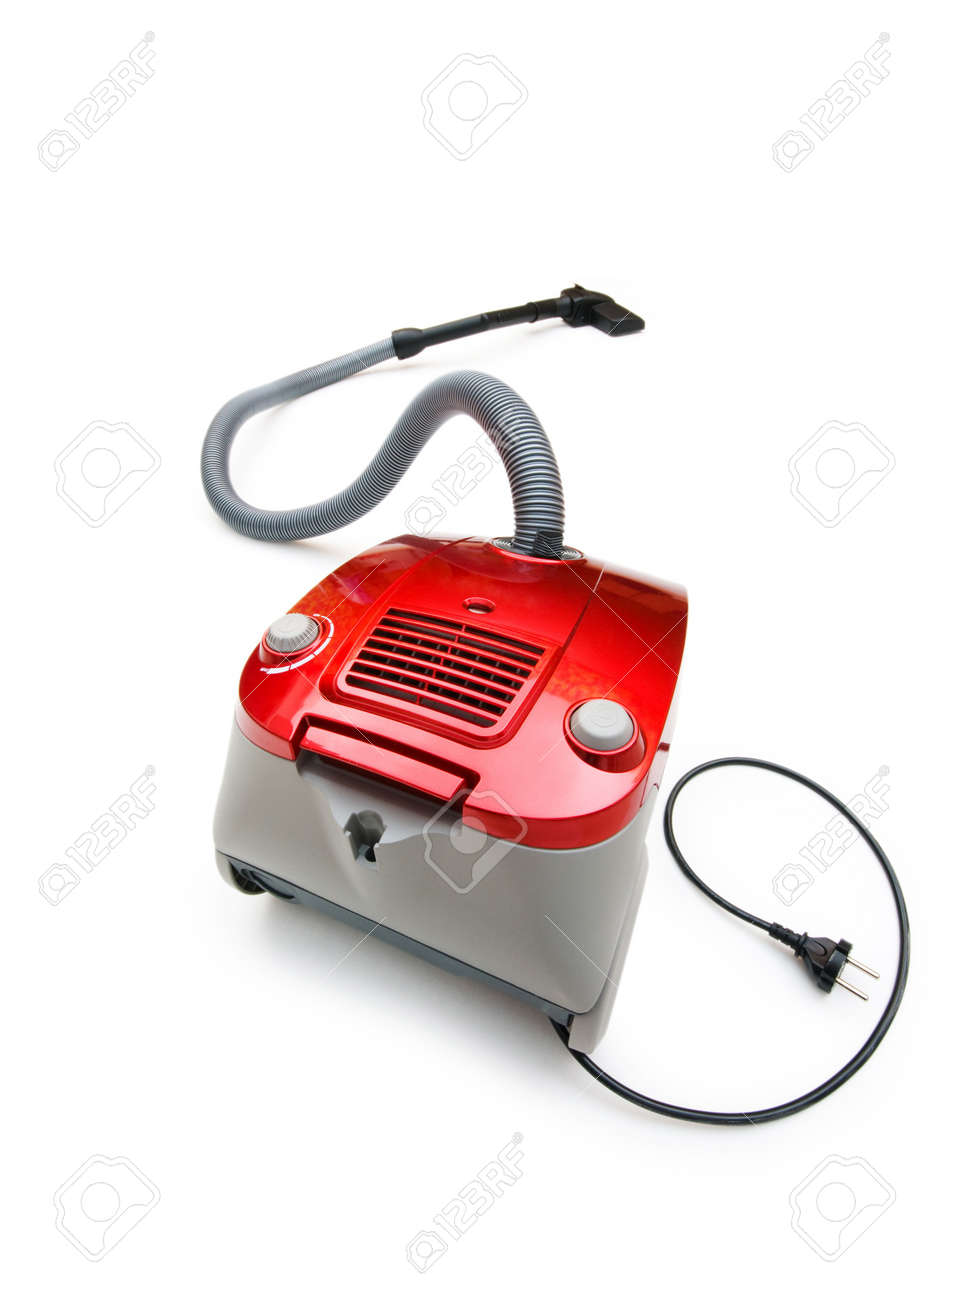 Vacuum cleaner isolated on the white background Stock Photo - 7045684